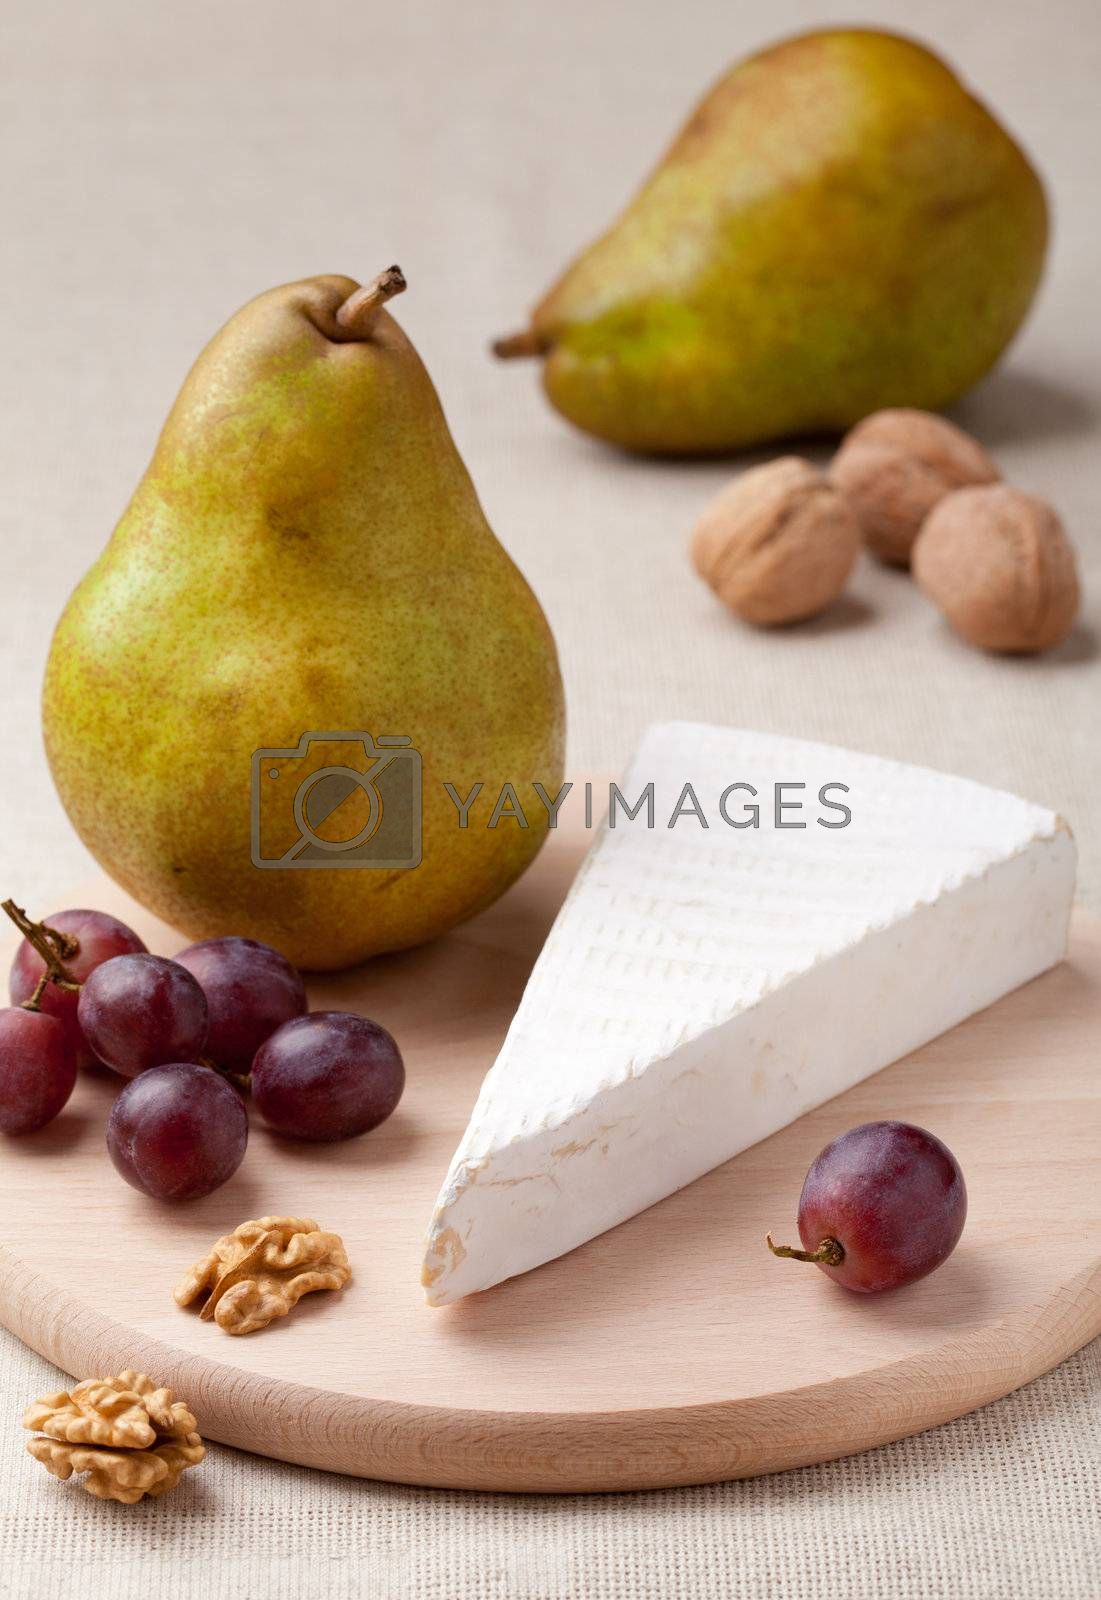 Royalty free image of Green pears, cheese brie, walnuts and grapes on wooden board by SergeyAK